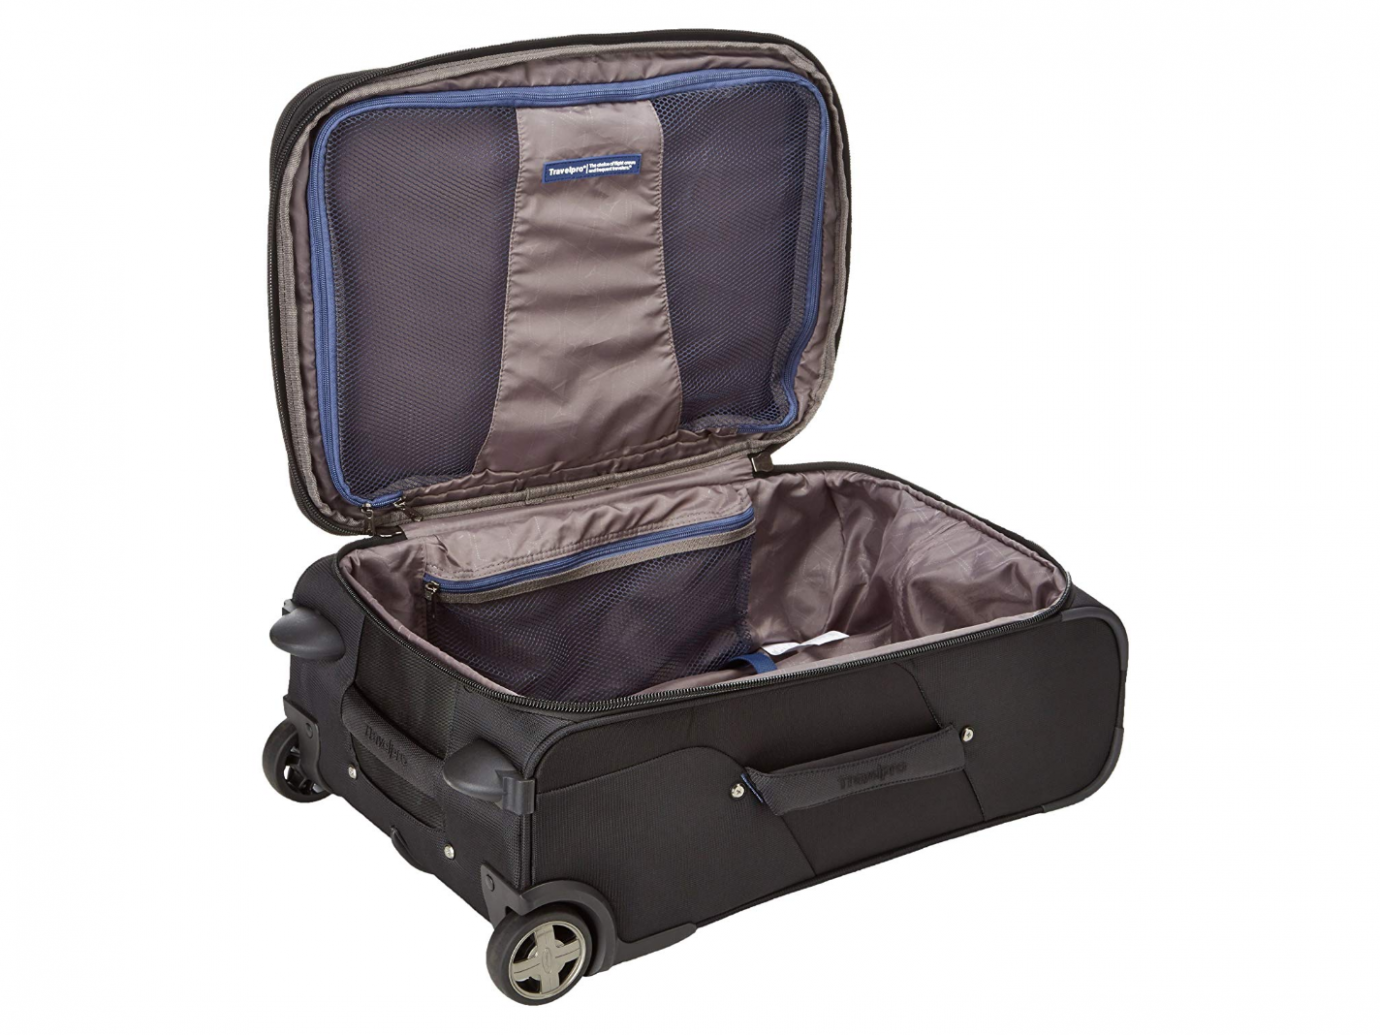 Suitcase by TravelPro